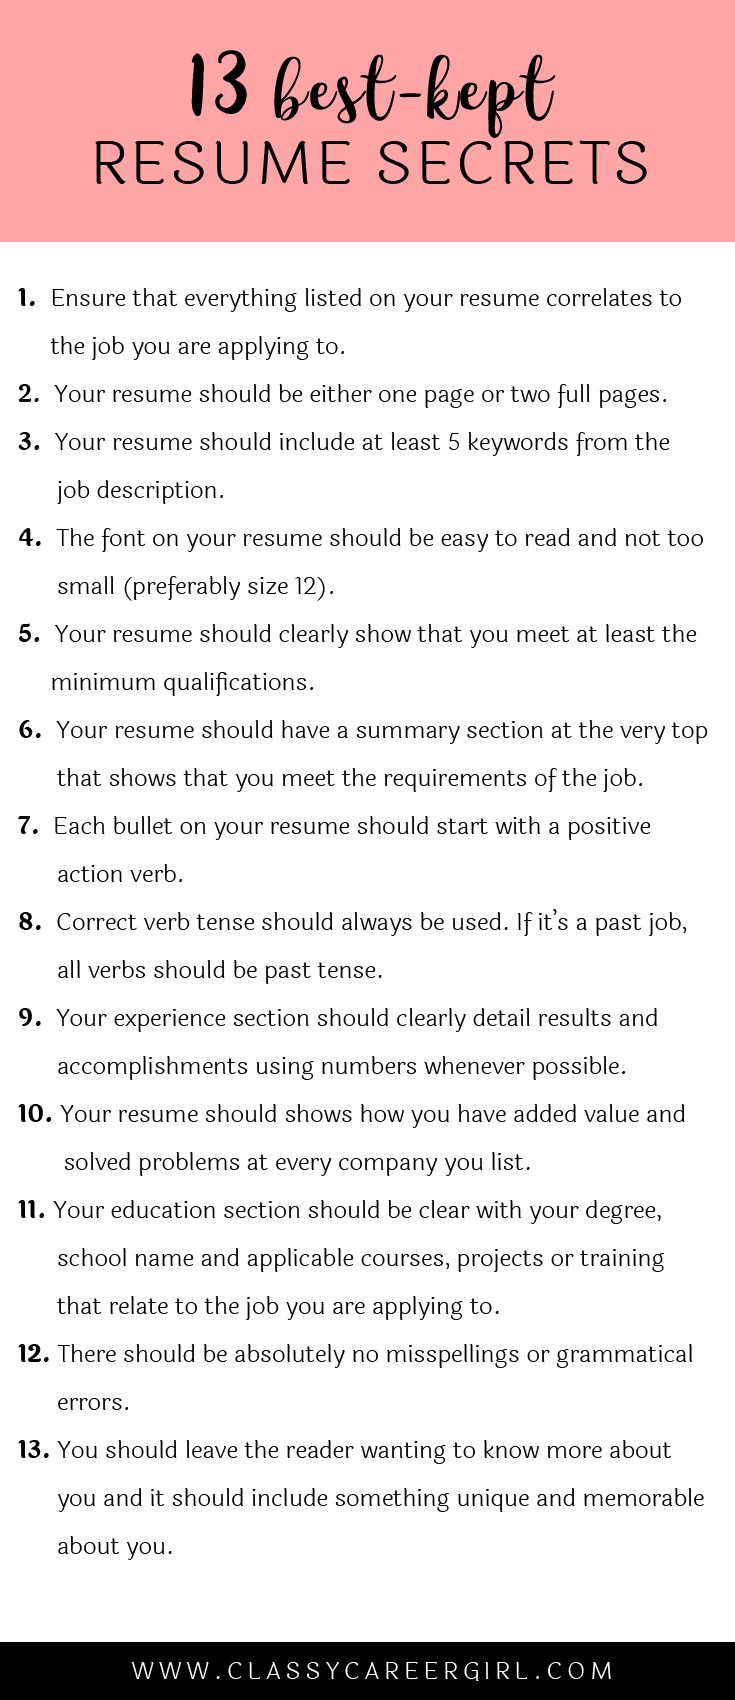 Opposenewapstandardsus  Stunning  Ideas About Resume On Pinterest  Cv Format Resume Cv And  With Inspiring Some Hiring Managers Will Toss Your Resume Out If You Dont Know These  With Easy On The Eye Action Resume Words Also Secretary Resume Sample In Addition Monster Resume Service And Resume Qualifications List As Well As Theatre Resume Examples Additionally Security Resume Sample From Pinterestcom With Opposenewapstandardsus  Inspiring  Ideas About Resume On Pinterest  Cv Format Resume Cv And  With Easy On The Eye Some Hiring Managers Will Toss Your Resume Out If You Dont Know These  And Stunning Action Resume Words Also Secretary Resume Sample In Addition Monster Resume Service From Pinterestcom